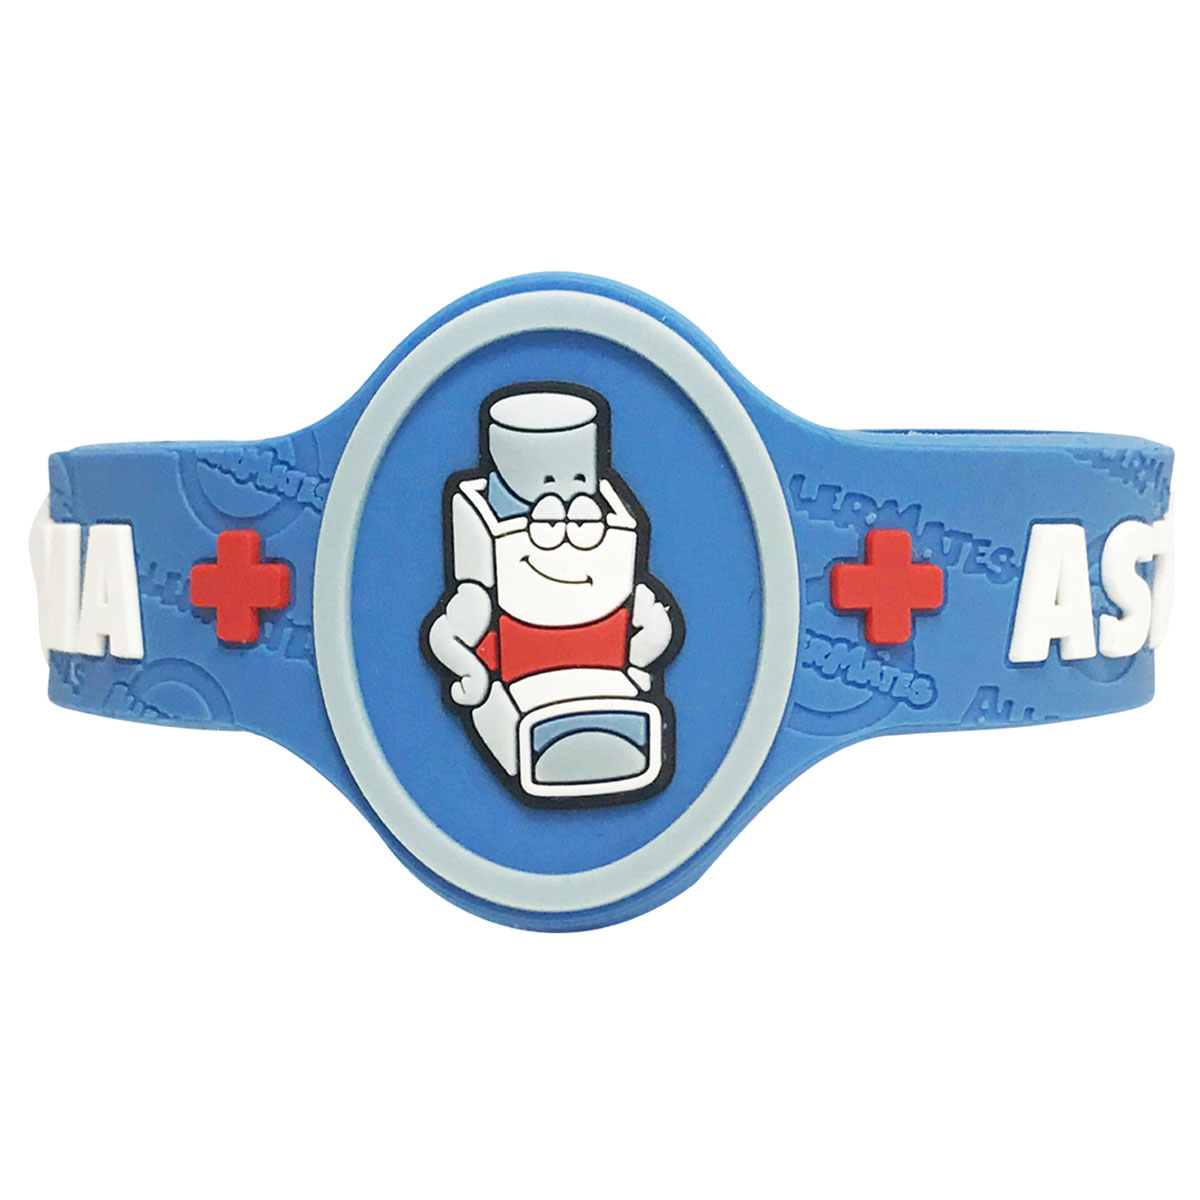 Children's Medical Alert Bracelet for Asthma AWABR10155